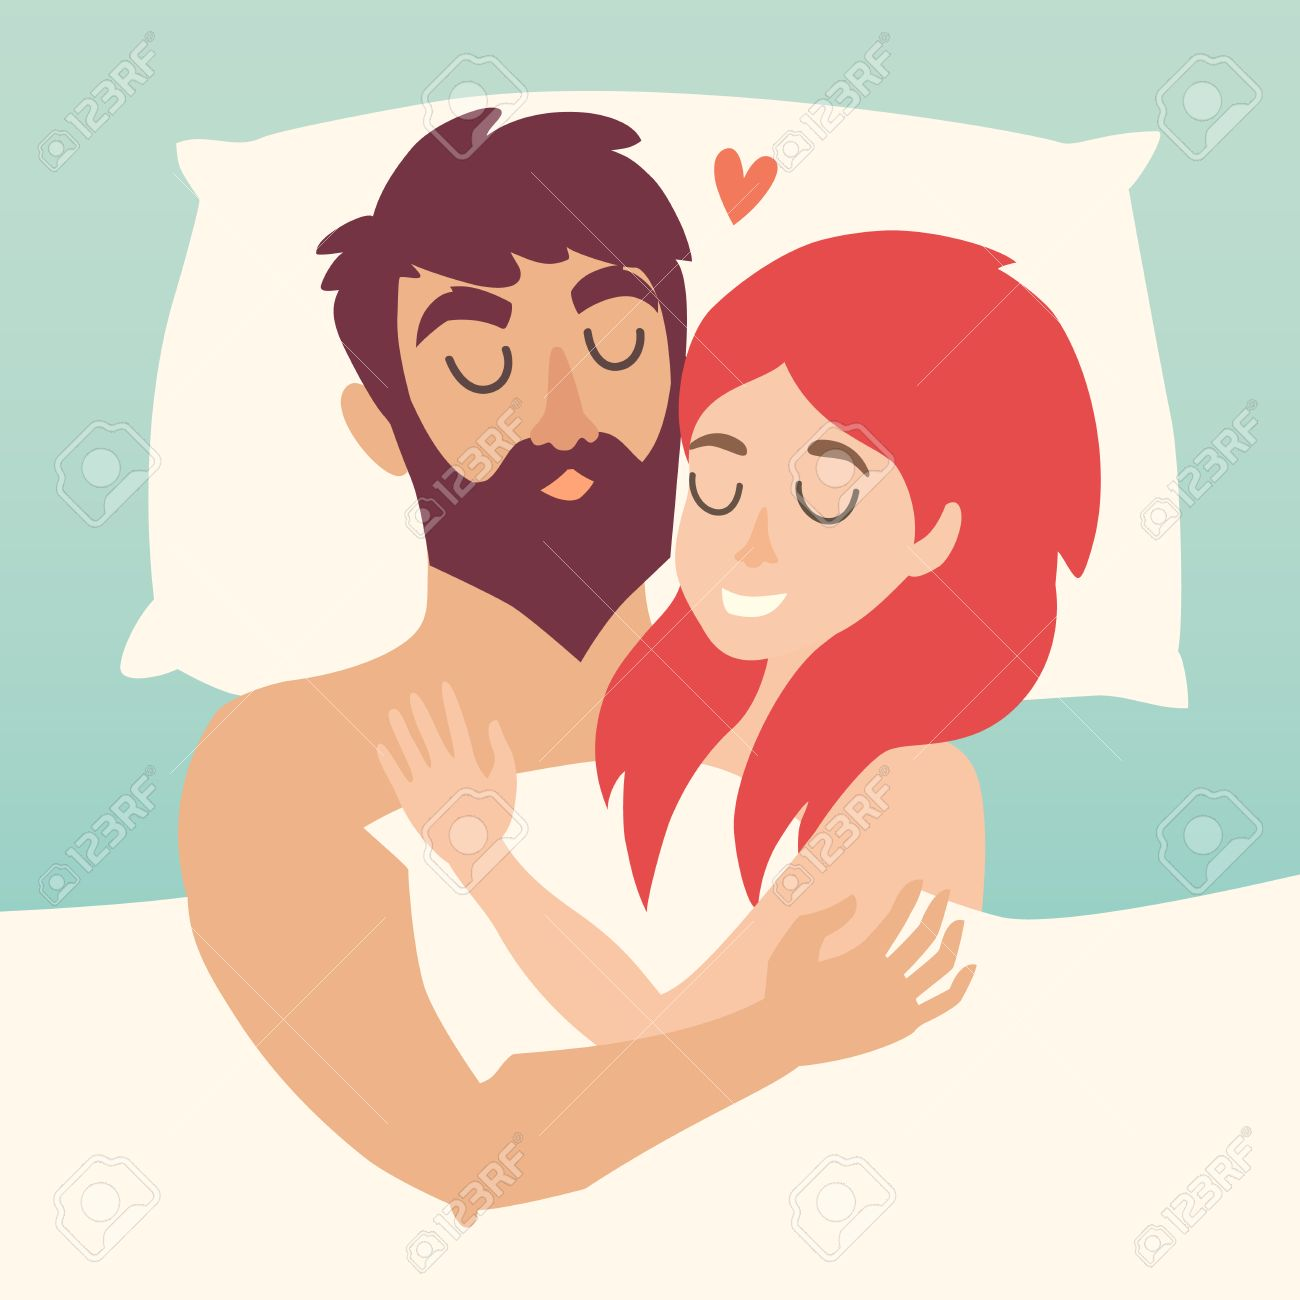 Sleeping time vector illustration people in love